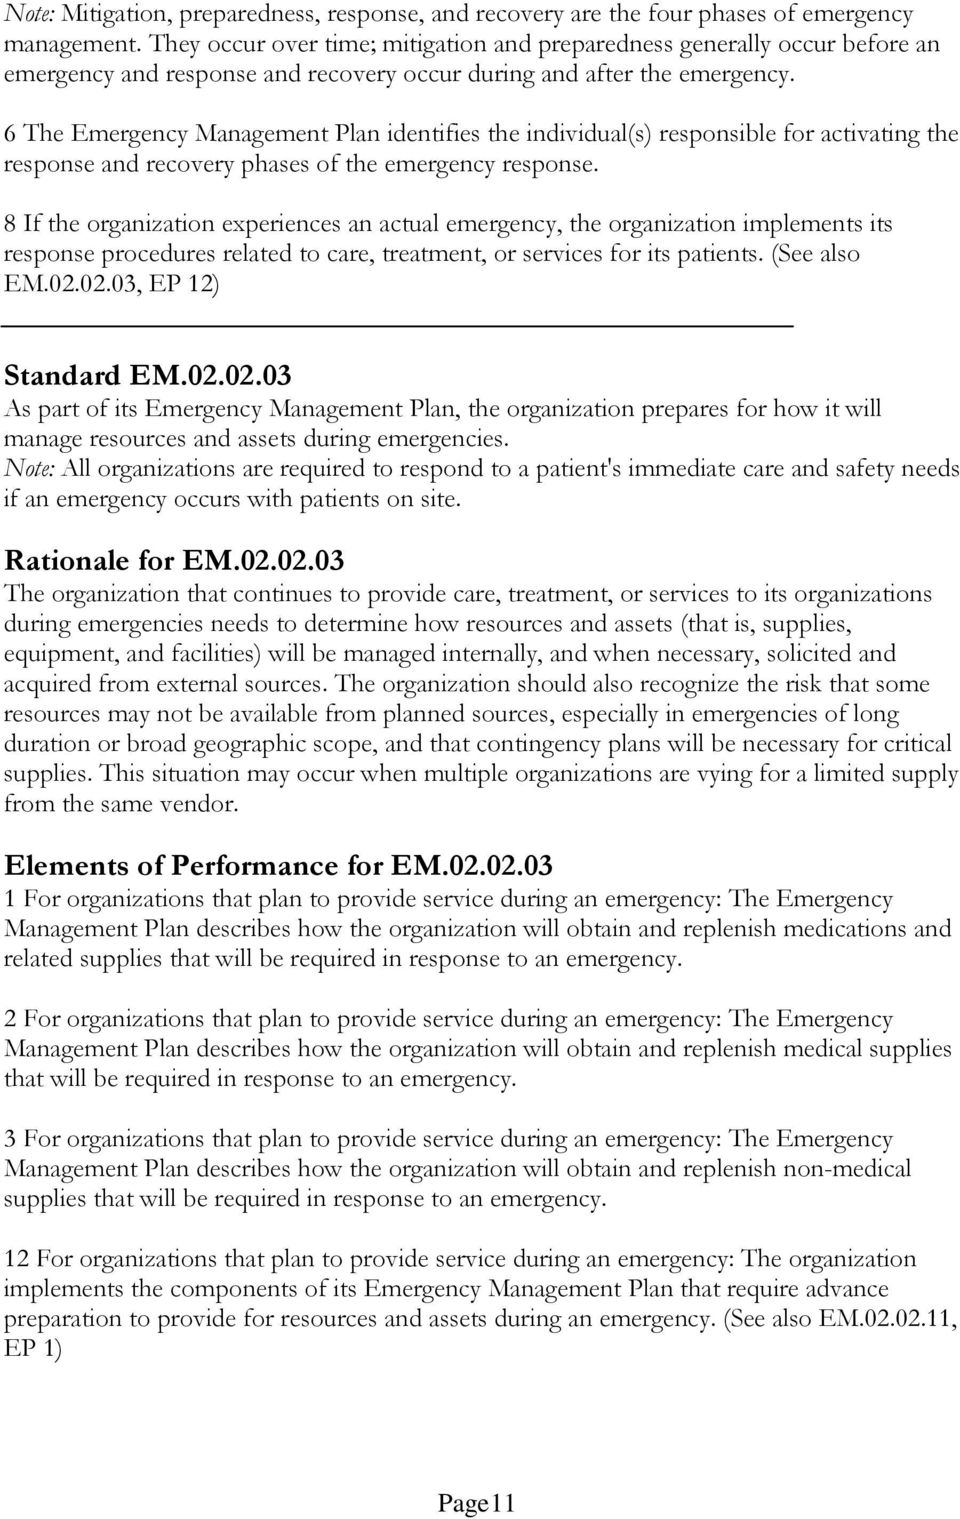 6 The Emergency Management Plan identifies the individual(s) responsible for activating the response and recovery phases of the emergency response.